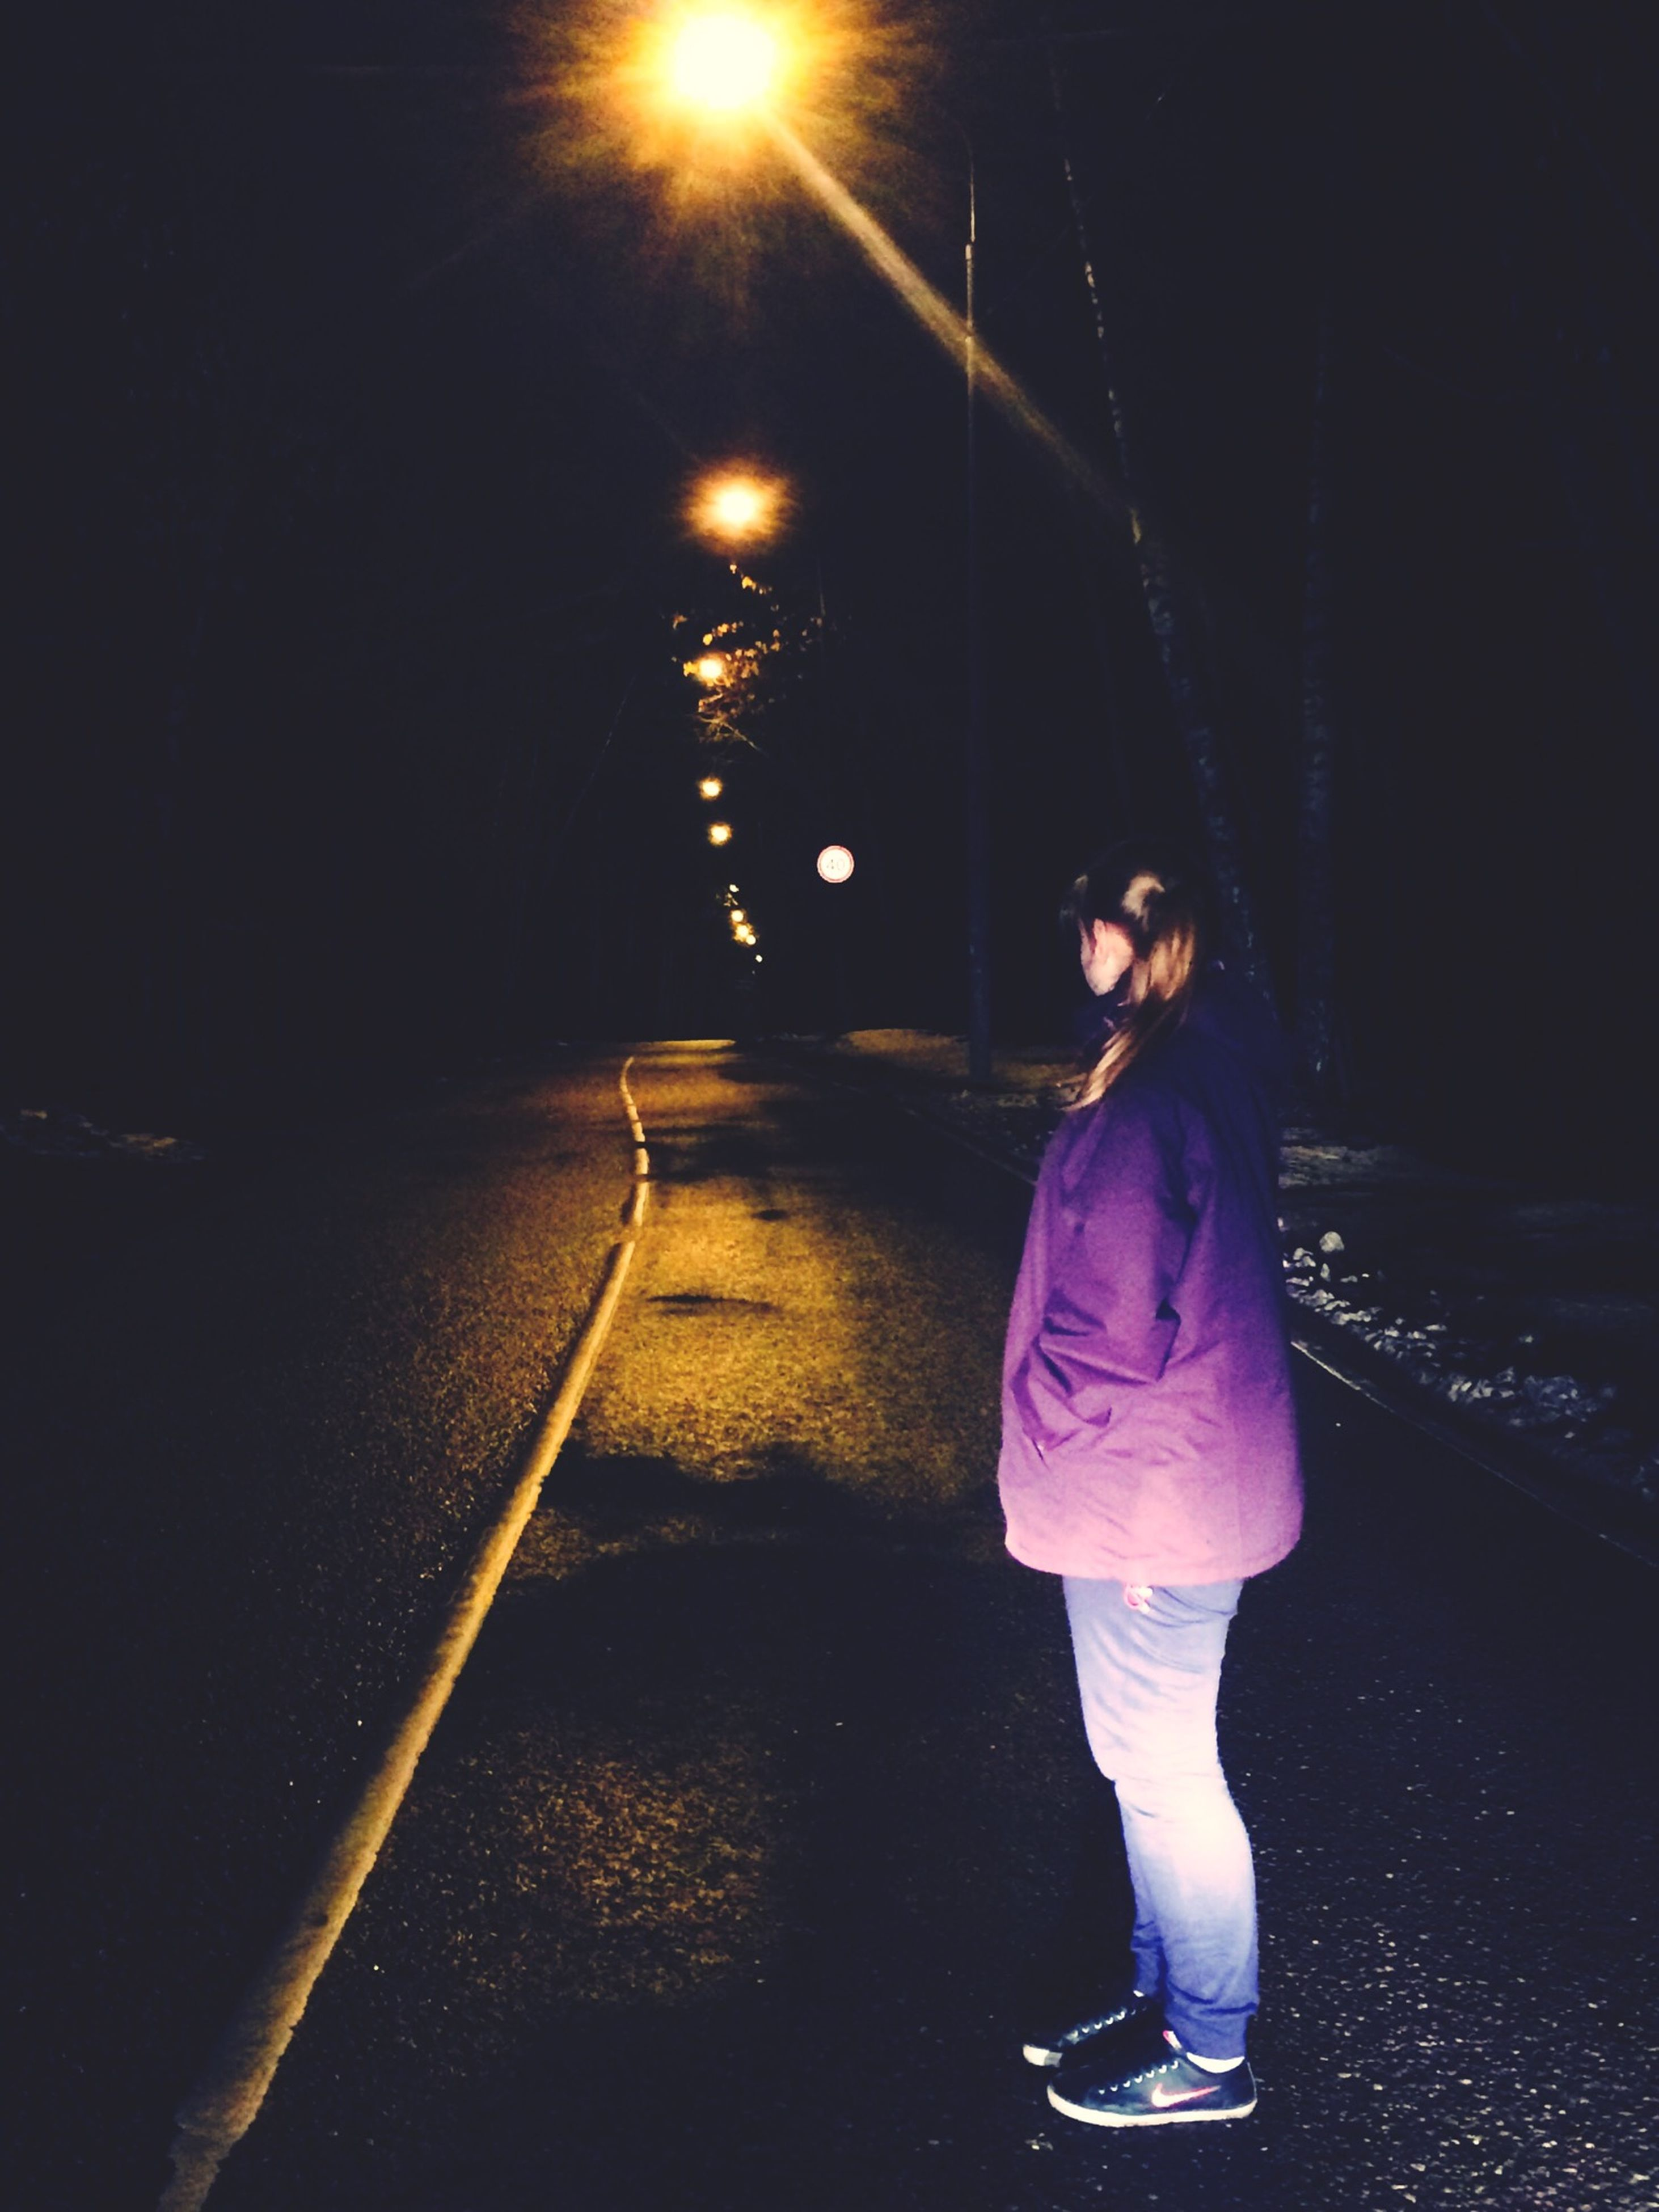 night, lifestyles, full length, standing, illuminated, leisure activity, casual clothing, rear view, street, front view, the way forward, young women, walking, person, road, outdoors, young adult